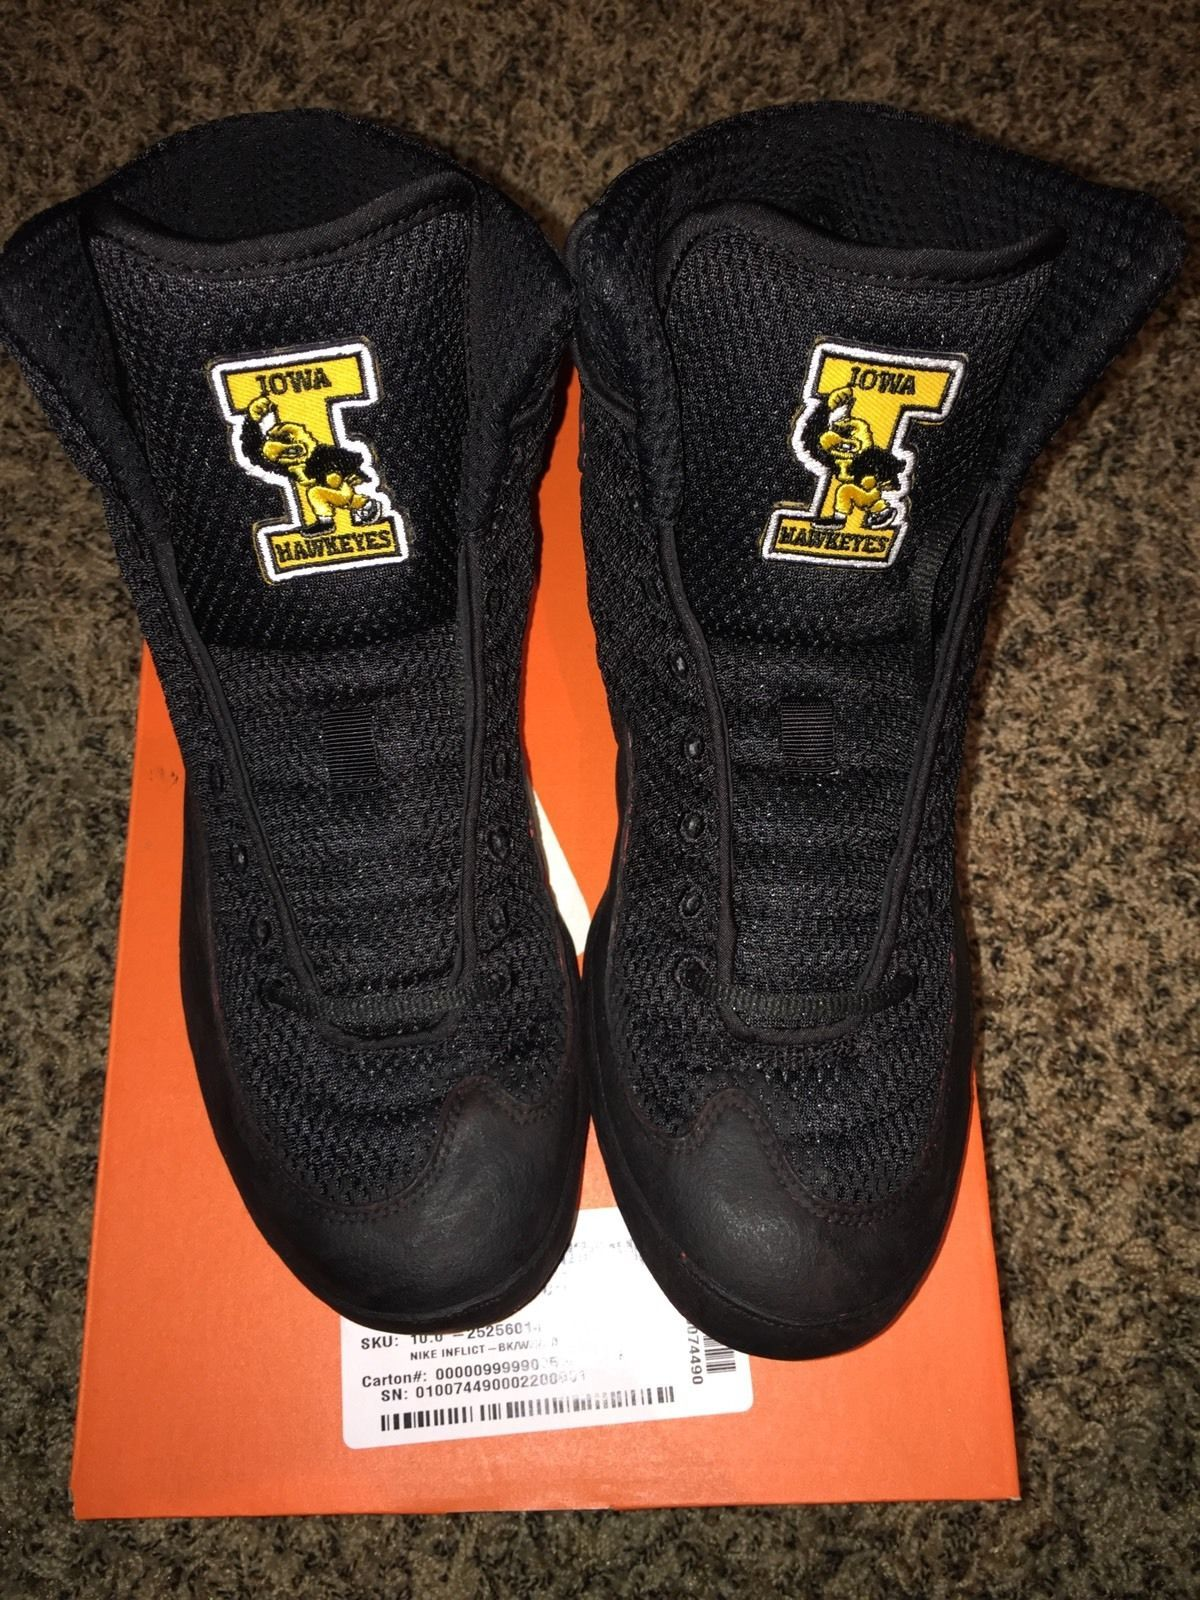 Iowa Hawkeyes Nike Inflict Wrestling Shoes  82c33297a